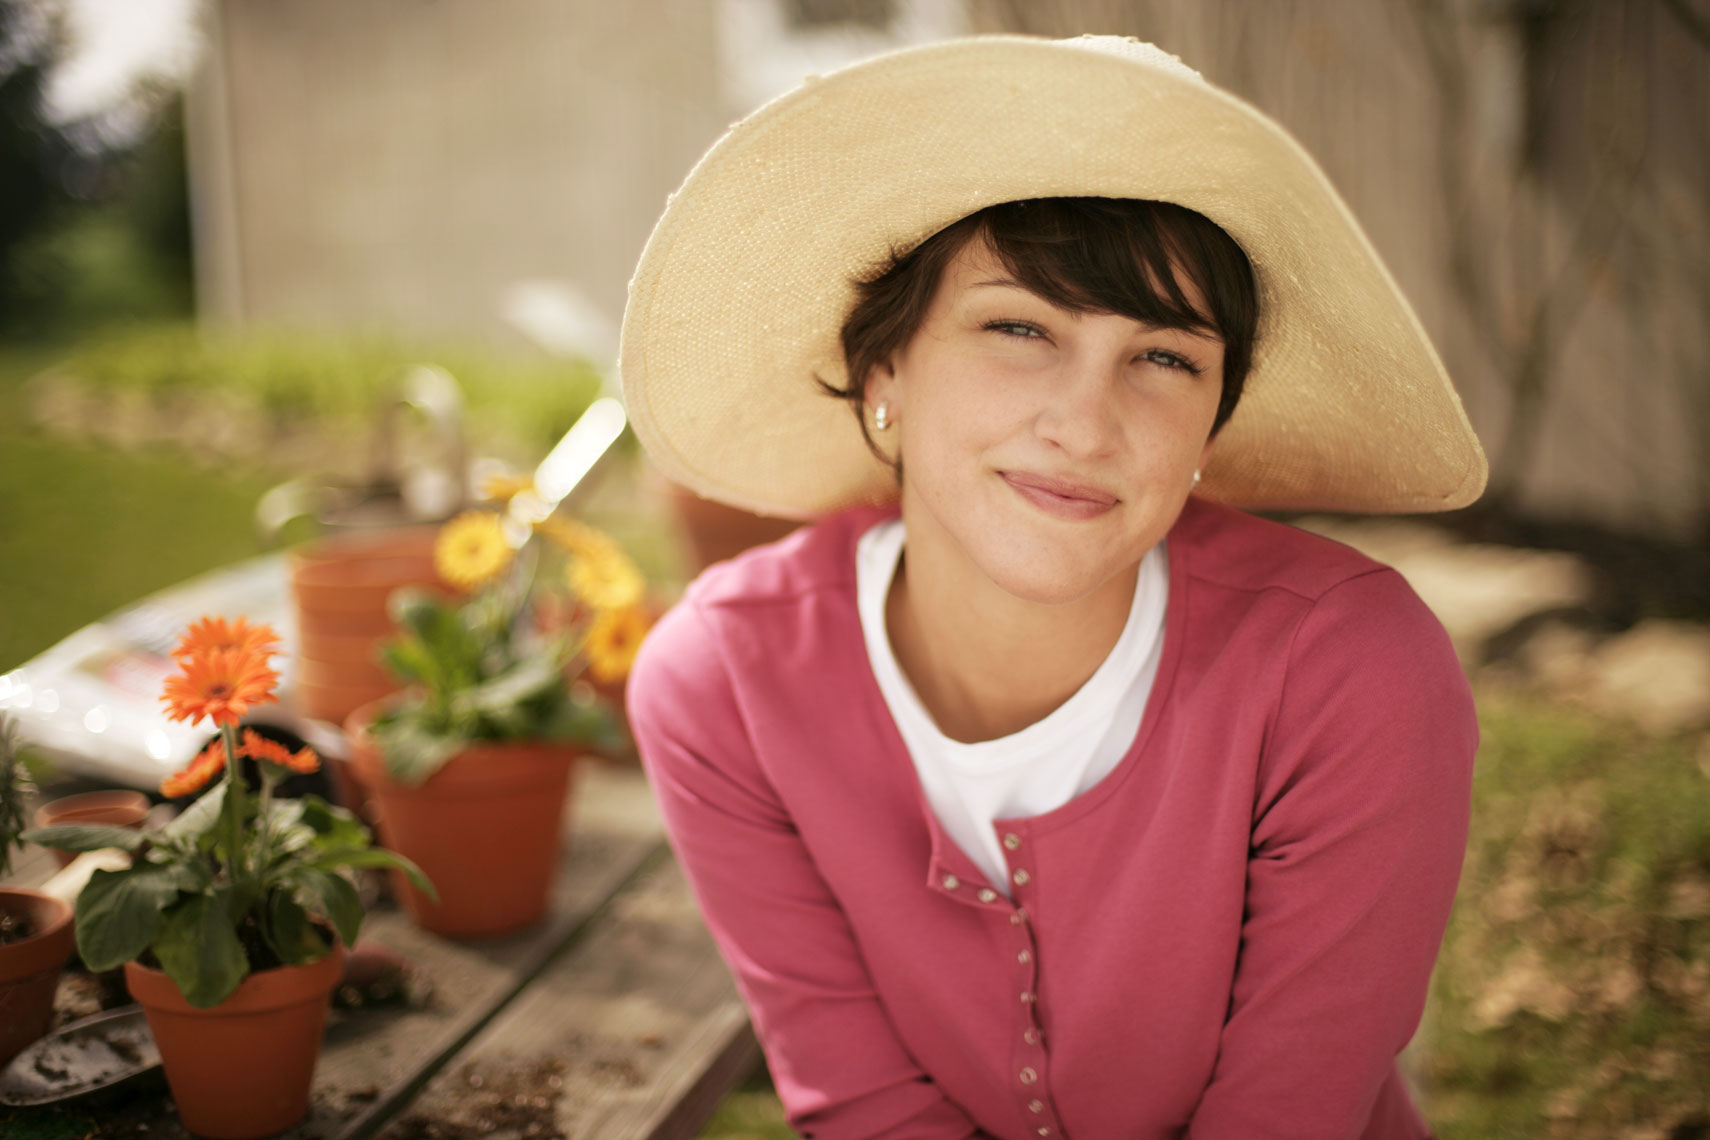 Environmental Portrait Of Young Woman Gardening